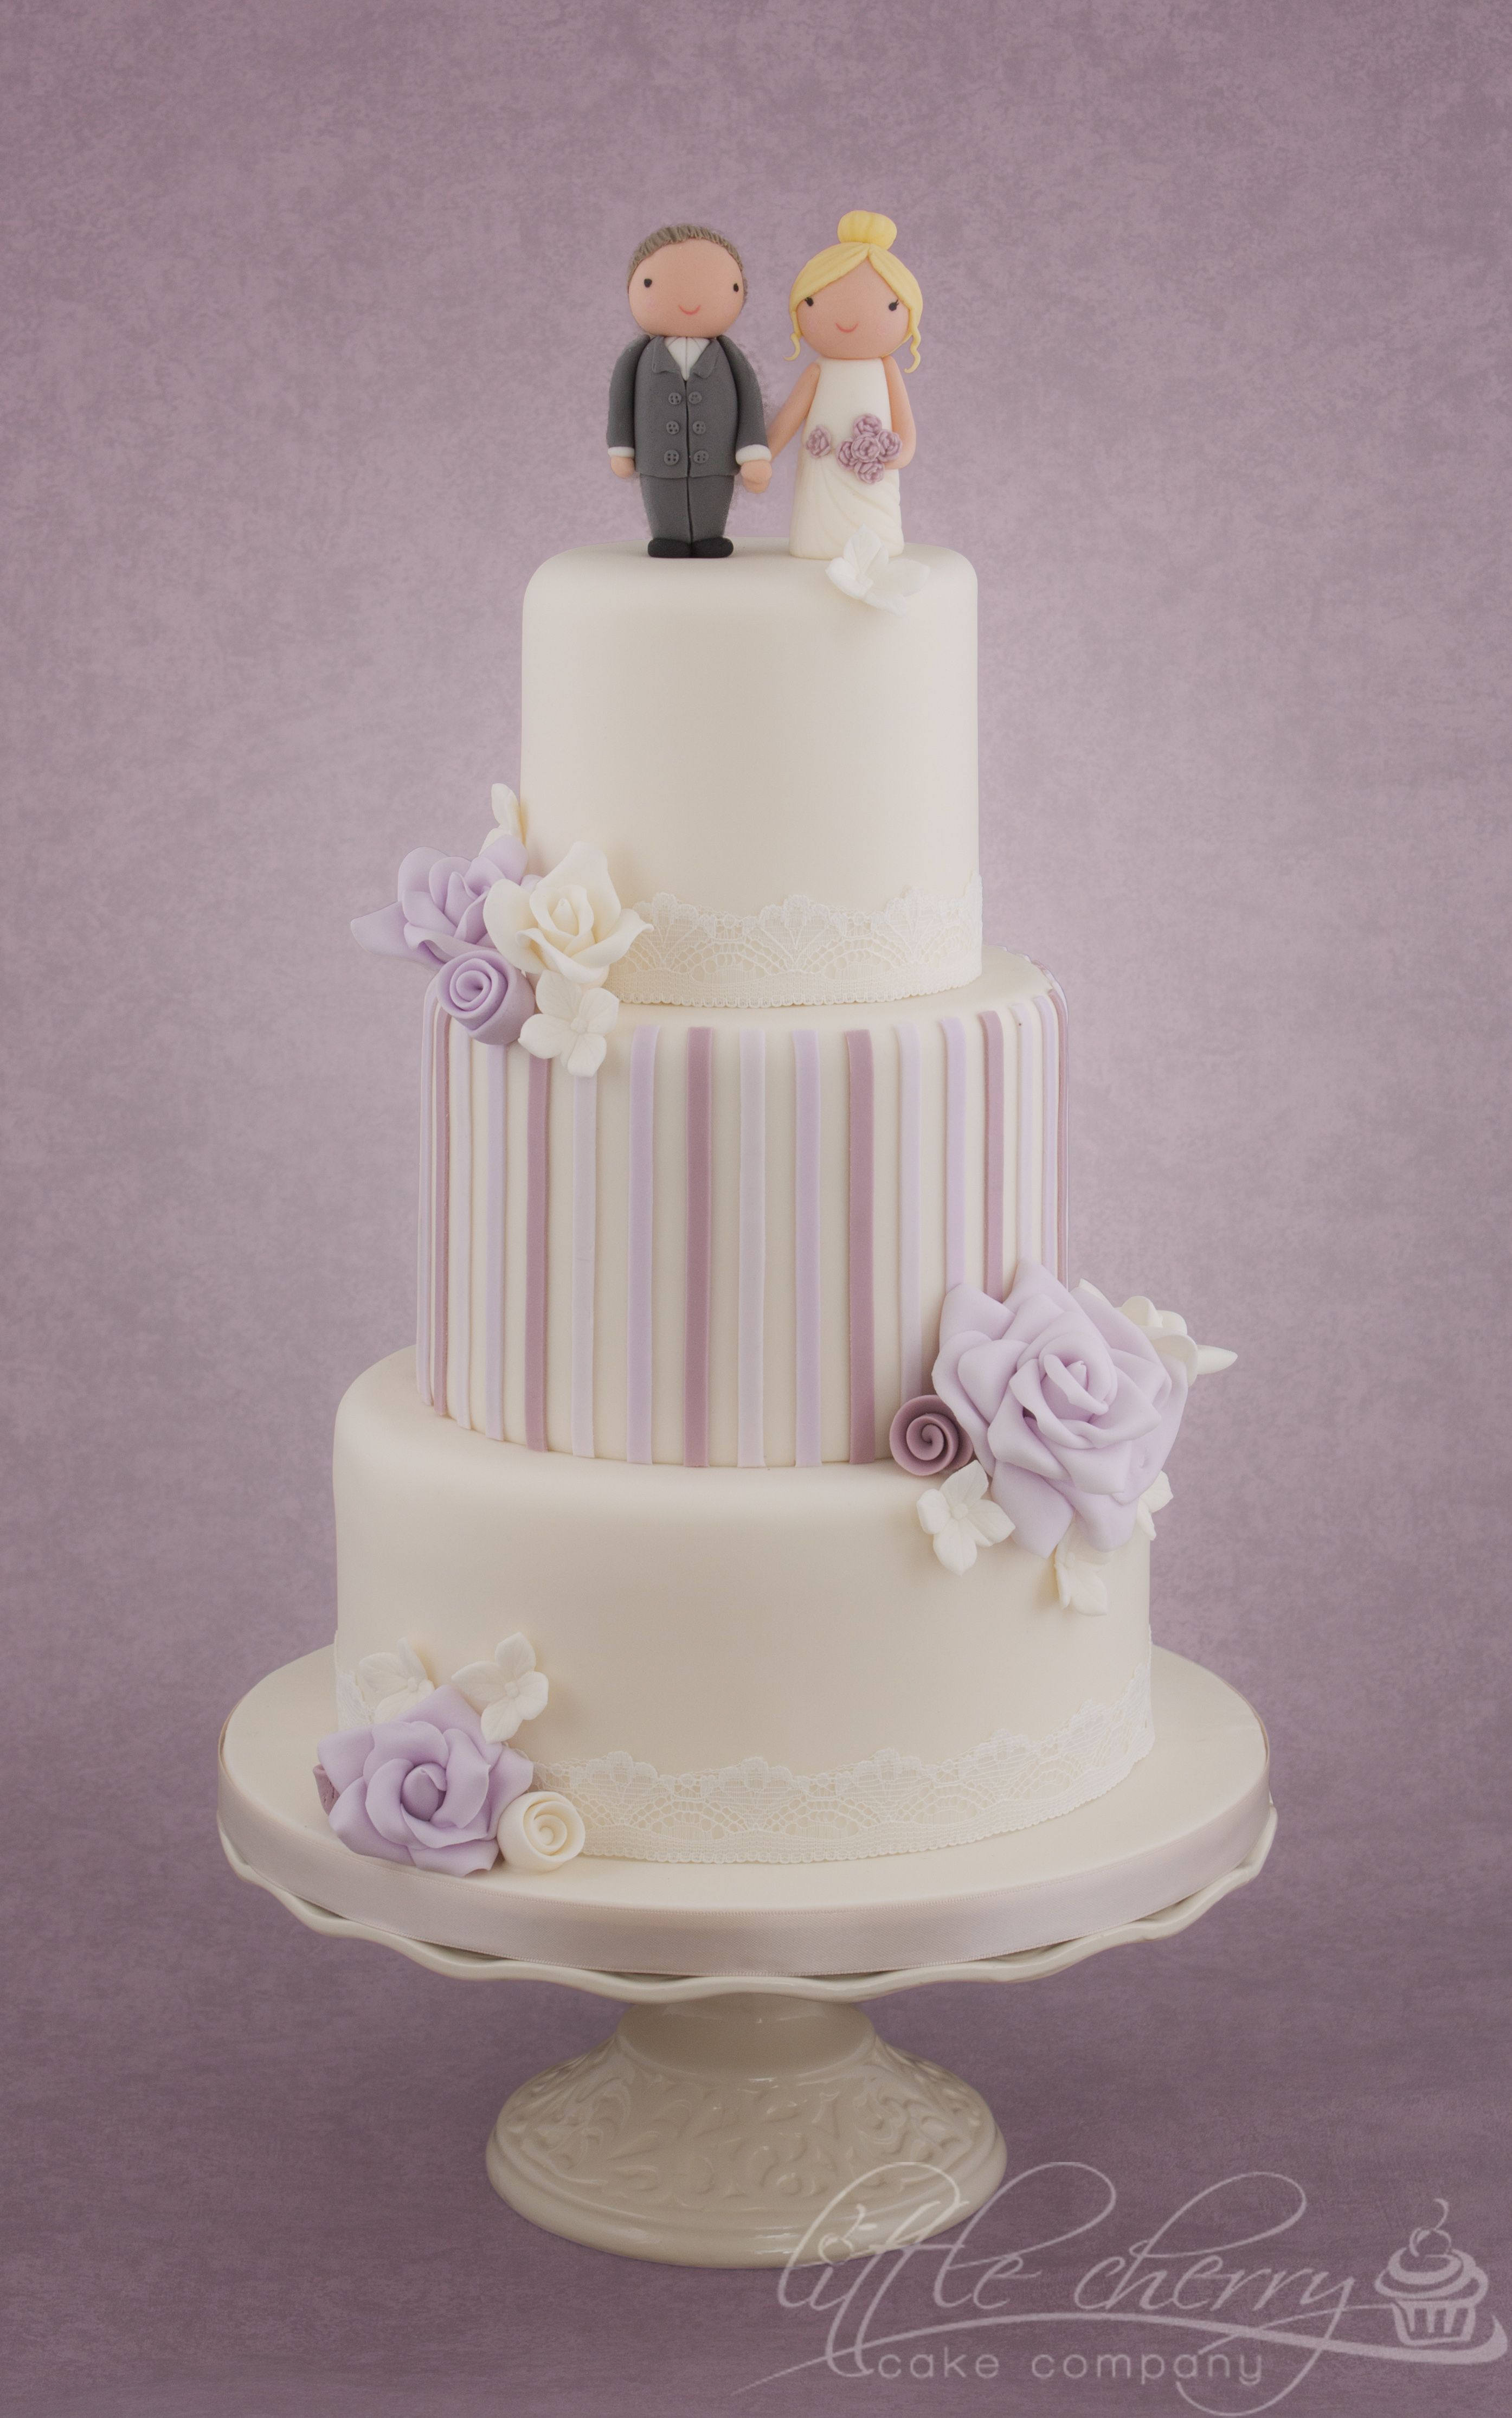 Lilac and lace wedding cake wedding cakes pinterest lace